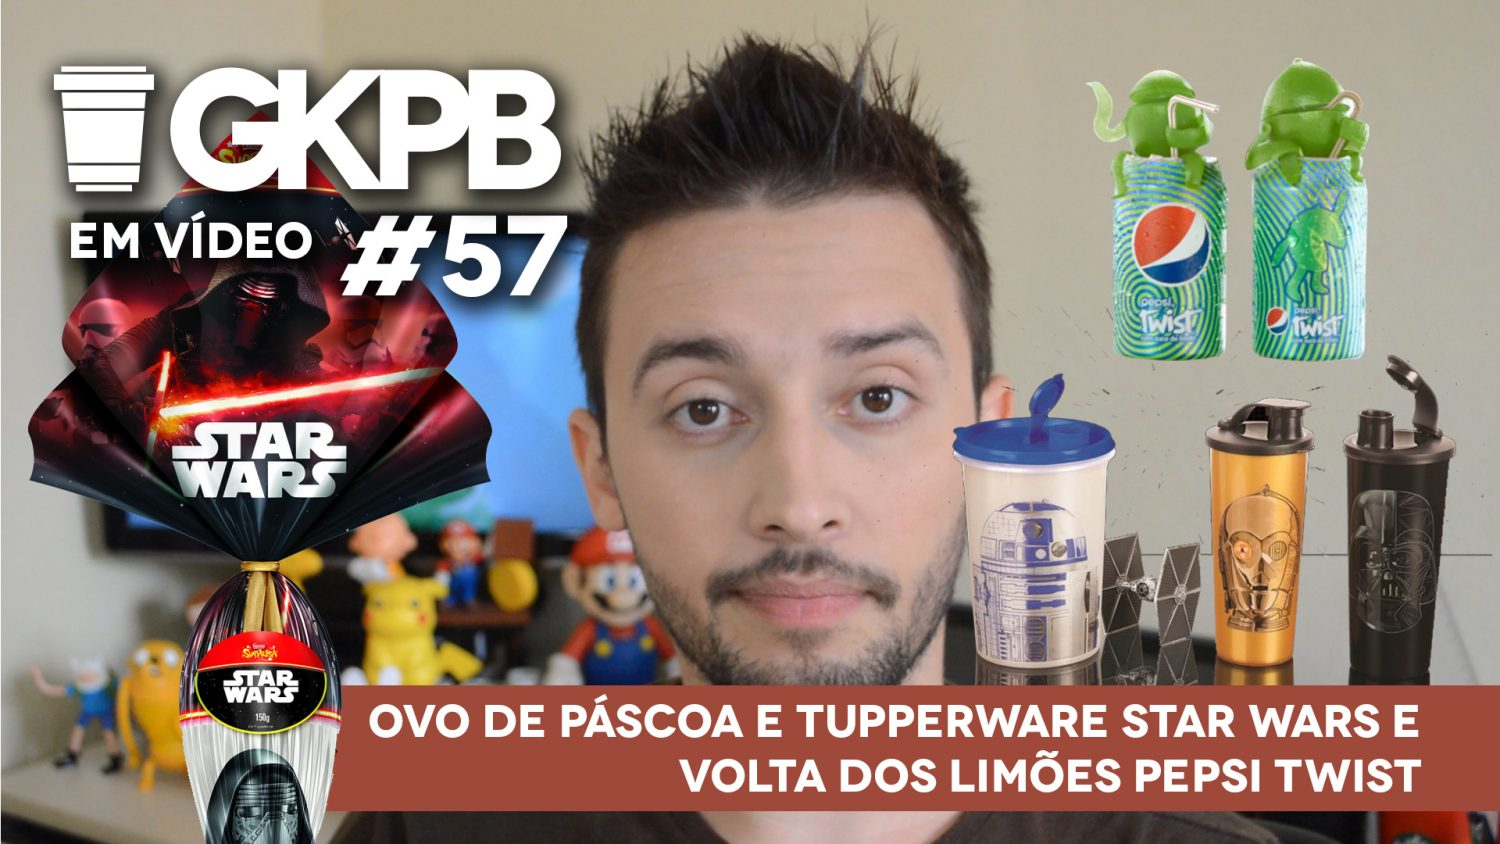 gkpb-em-video-57-ovo-pascoa-star-wars-pepsi-twist-copos-tupperware-blog-geek-publicitario